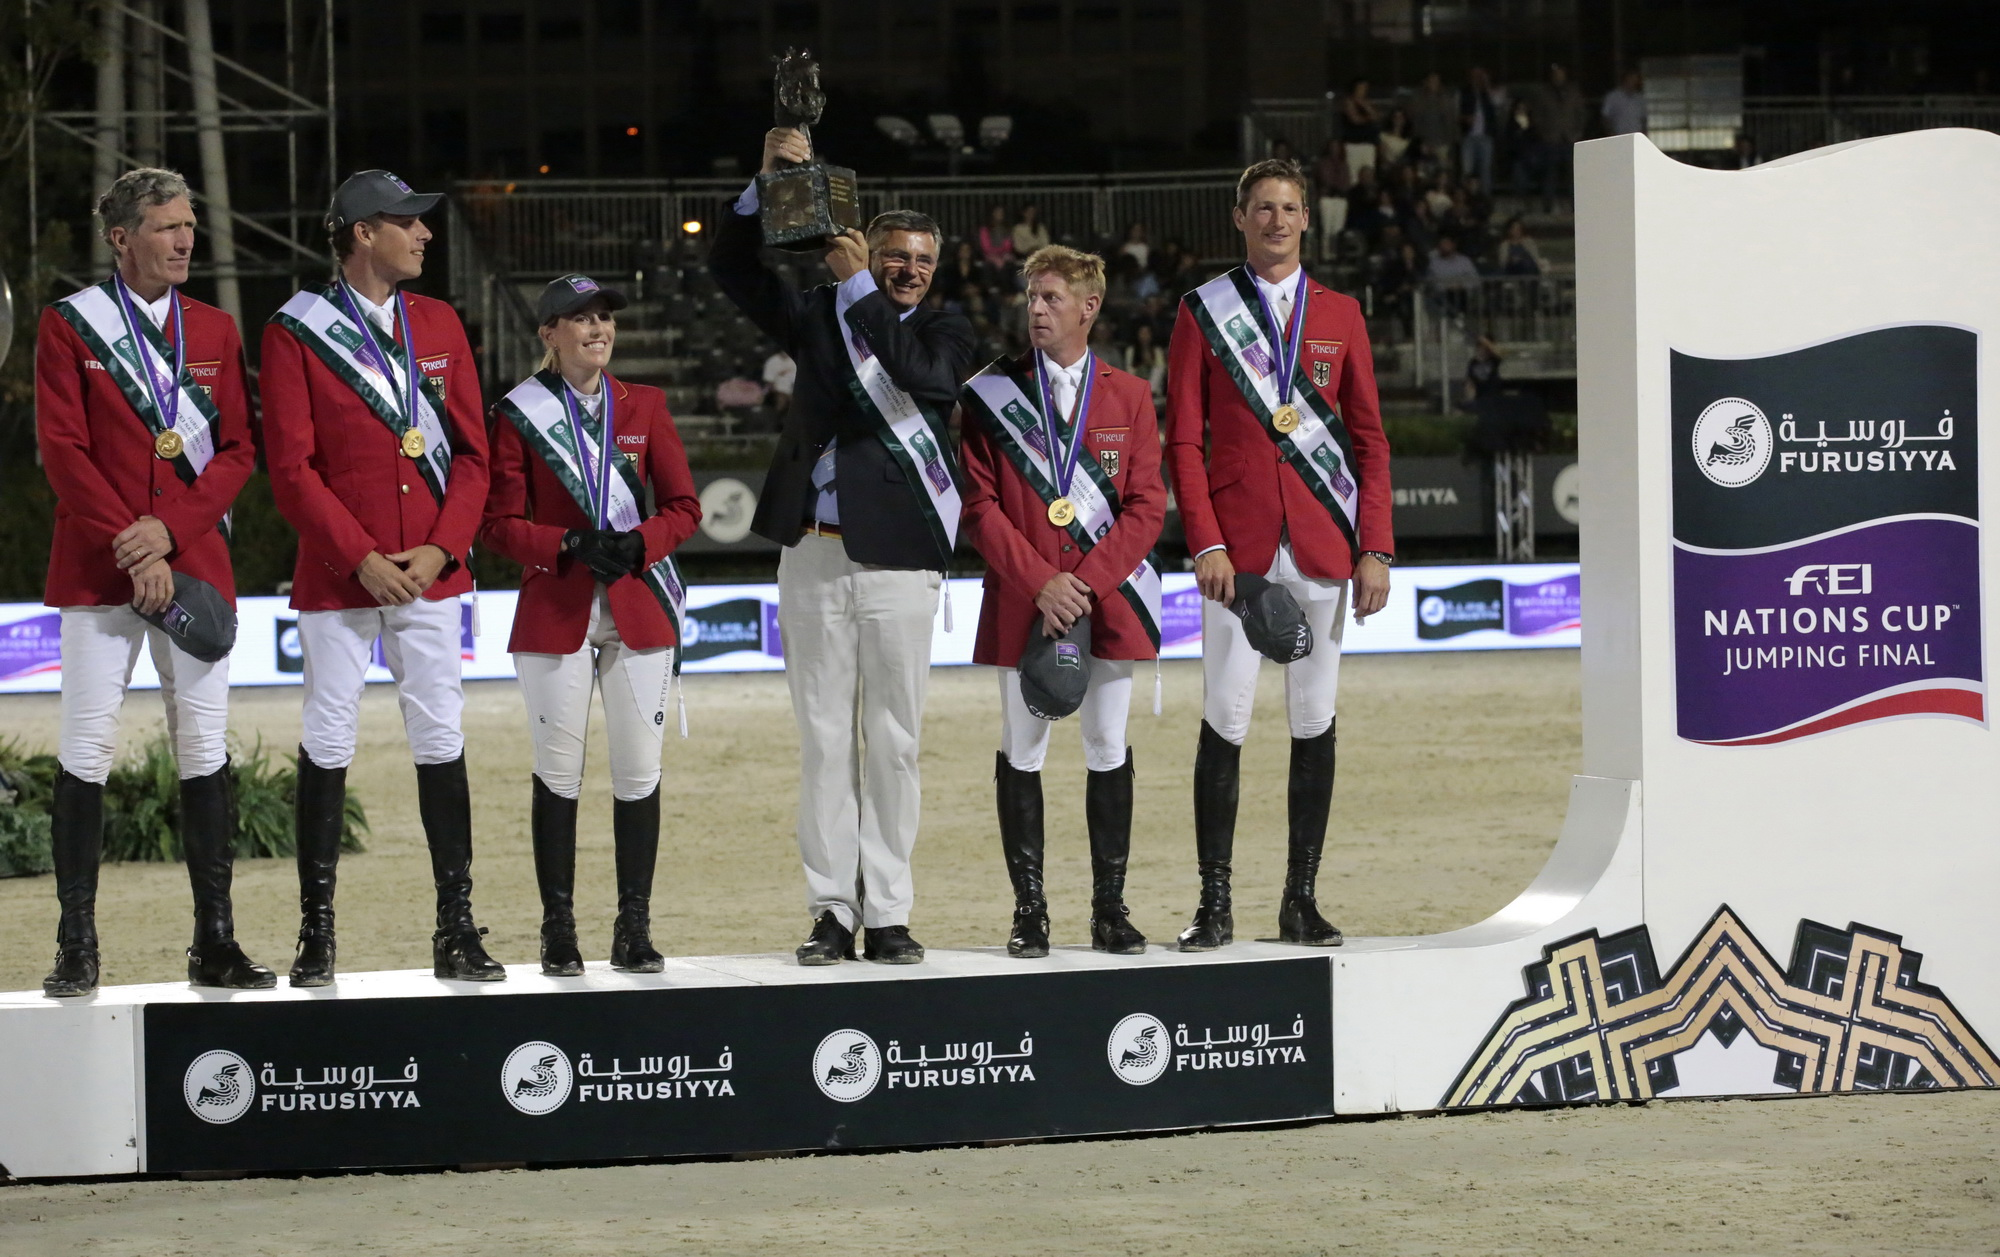 Team Germany, Furusiyya FEI Nations Cup™ 2016 champions, on the podium in Barcelona (ESP): (L to R) Ludger Beerbaum, Christian Ahlmann, Janne Friederike Meyer, Otto Becker (Chef d'Equipe), Marcus Ehning and Daniel Deusser. © FEI/Jim Hollander